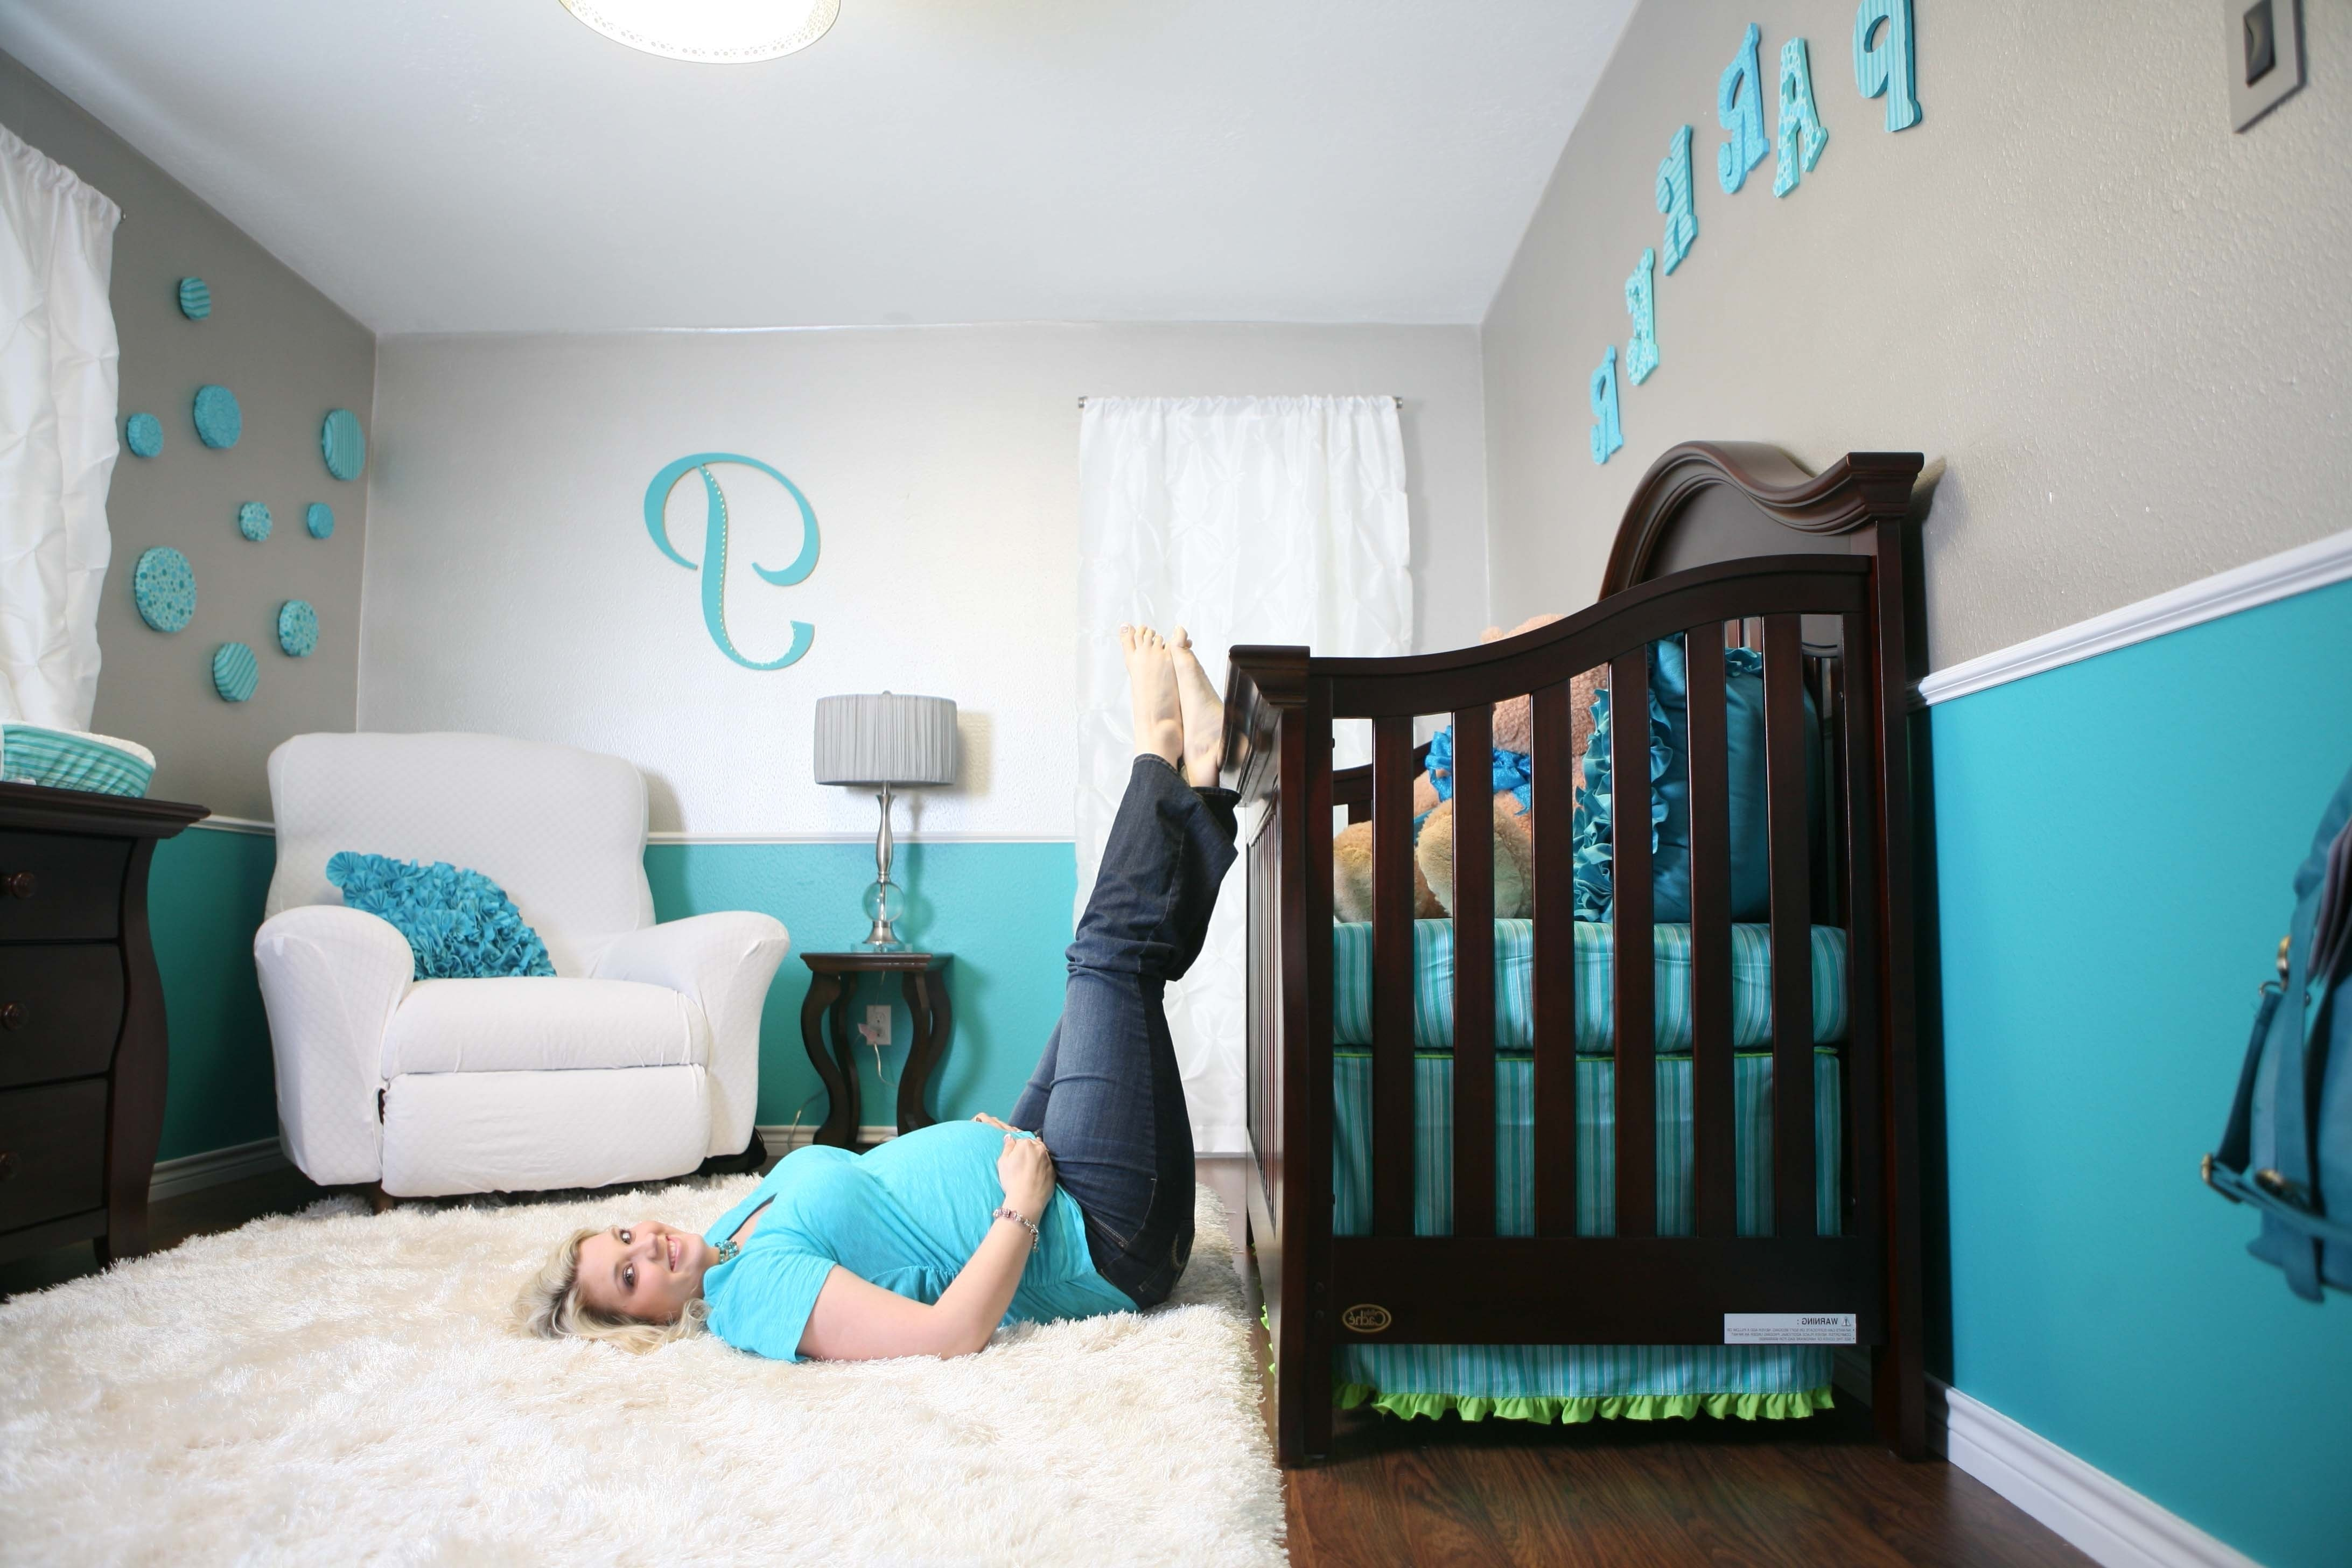 10 Lovely Baby Boy Room Decorating Ideas inspirations bedroom baby boy room decor ideas trends and 2020